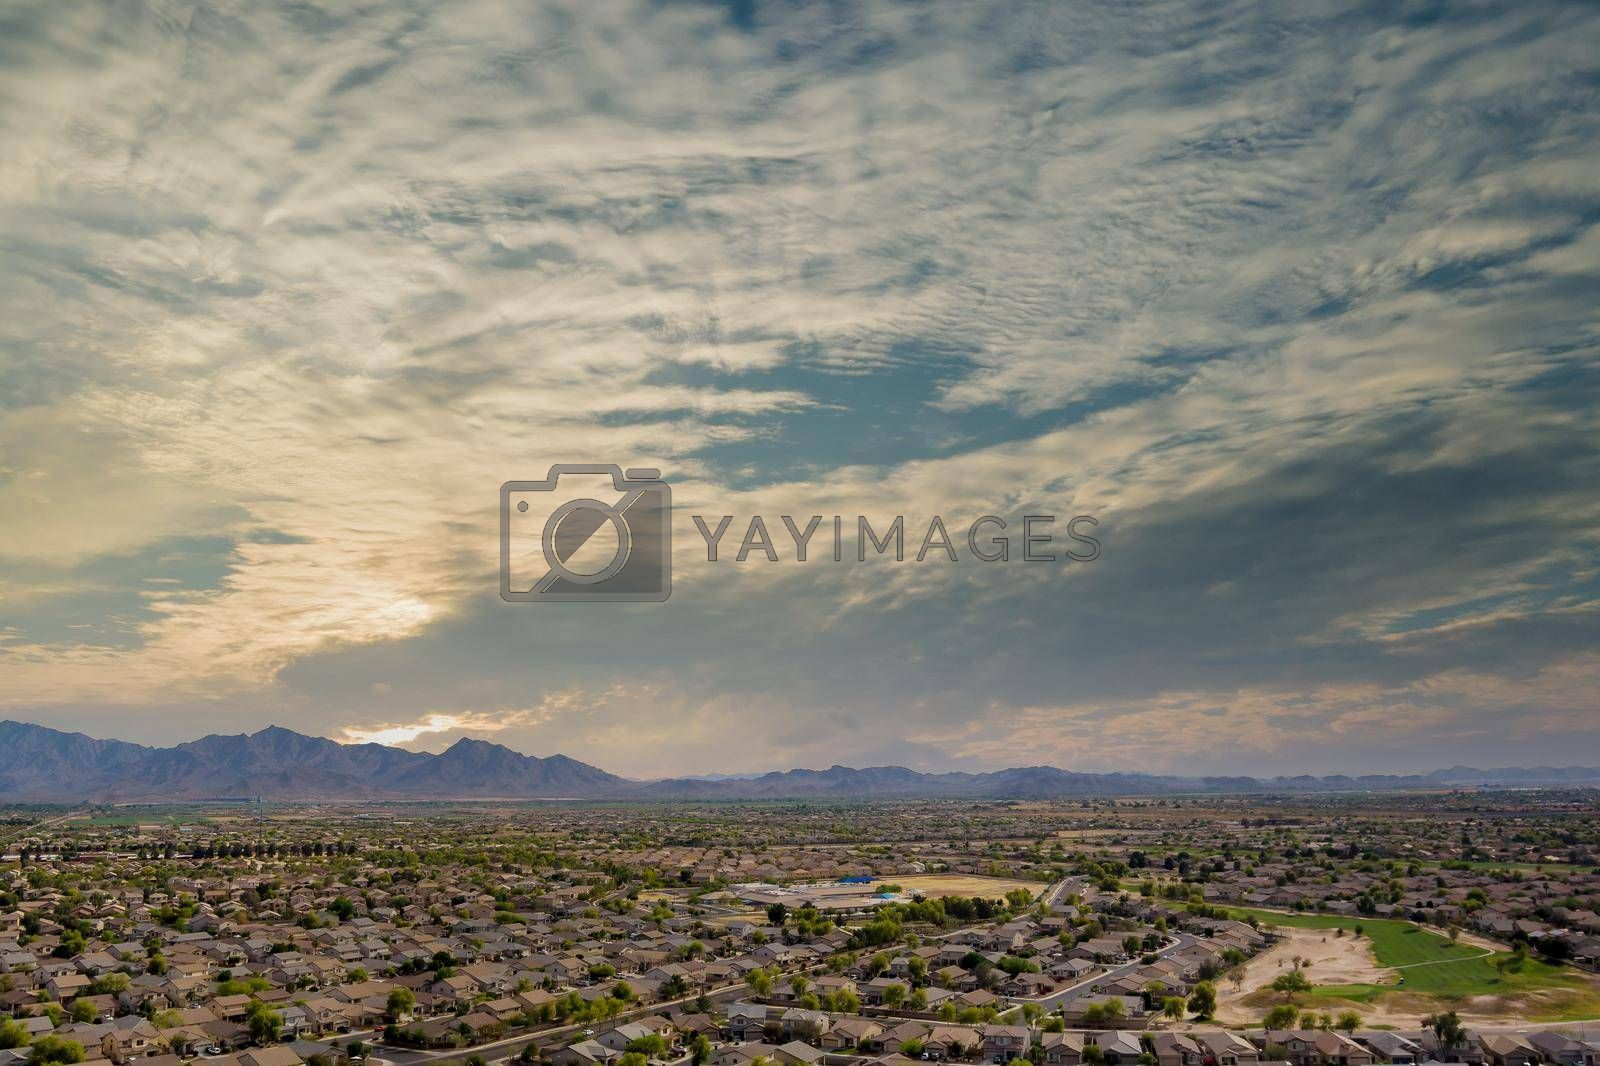 Avondale small town a view overlooking desert mountains near on of state capital Phoenix Arizona